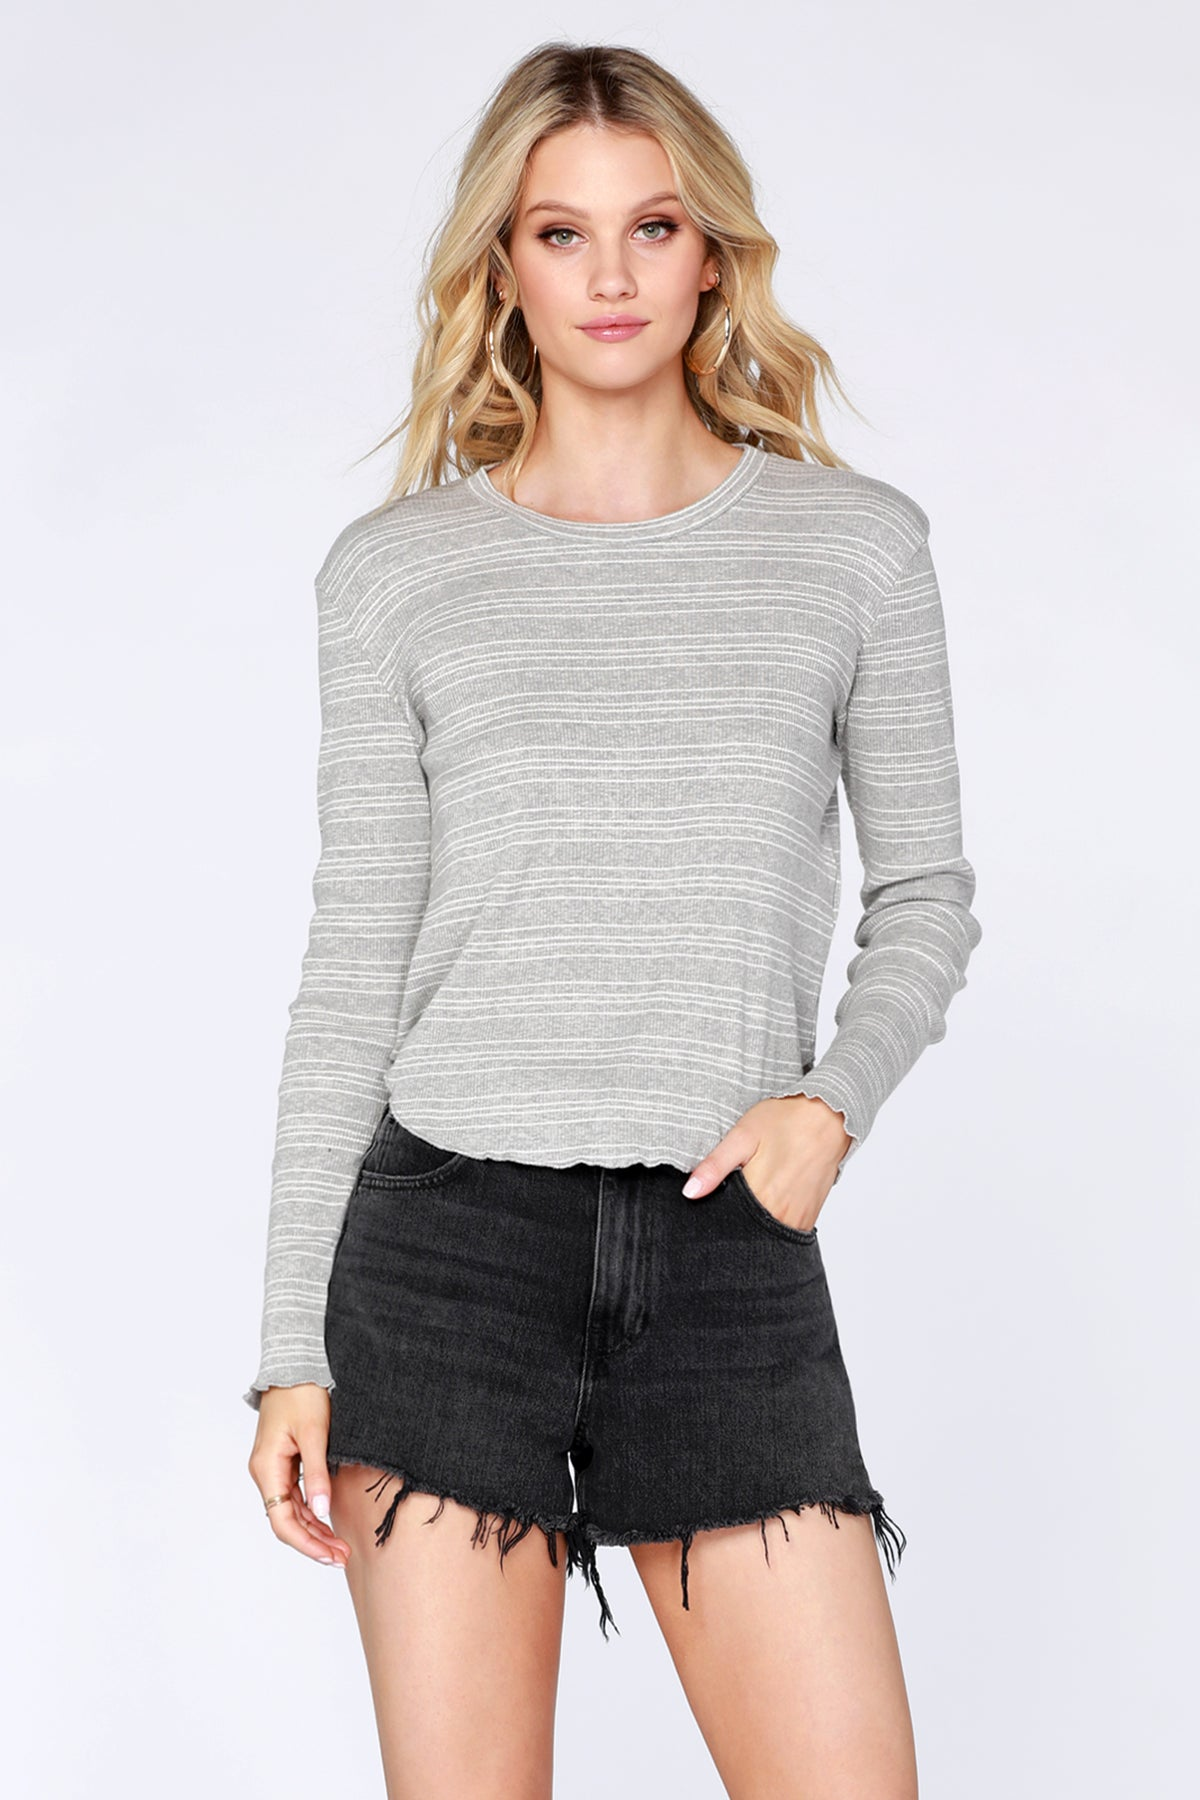 Striped Rib Crop Top - bobi Los Angeles